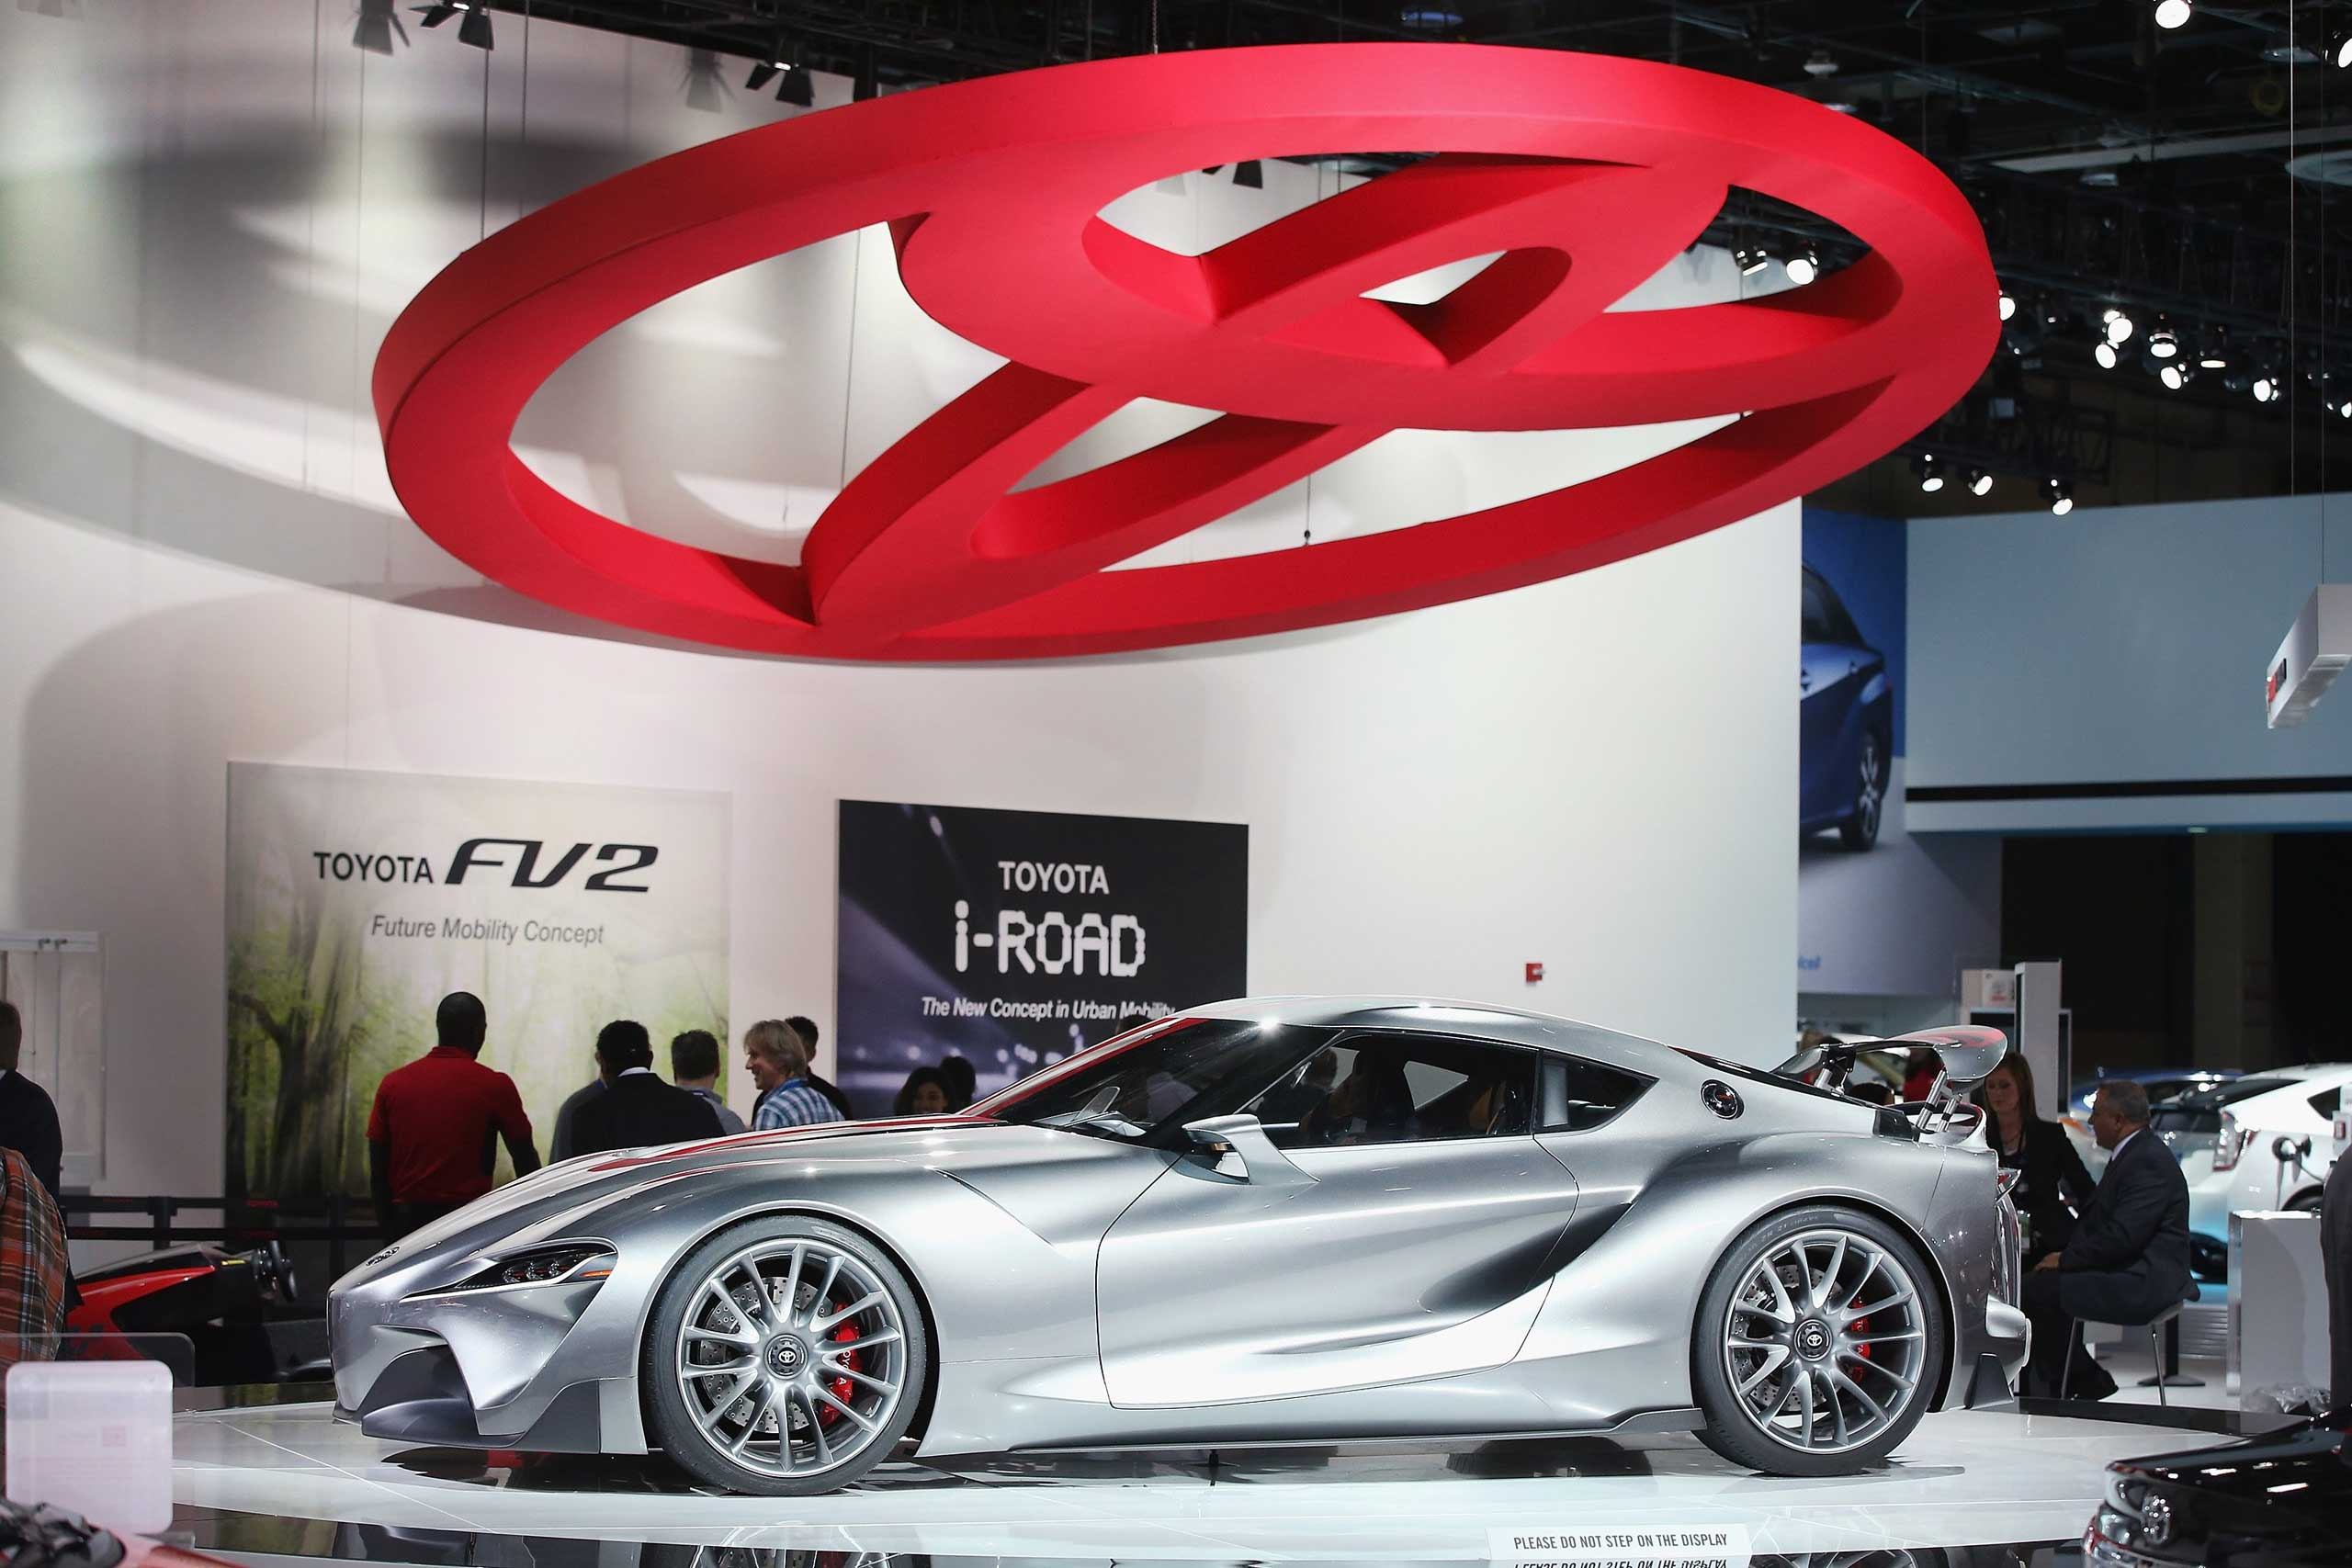 Toyota shows off their  FT-1 concept car during the media preview on Jan. 13, 2015 in Detroit.